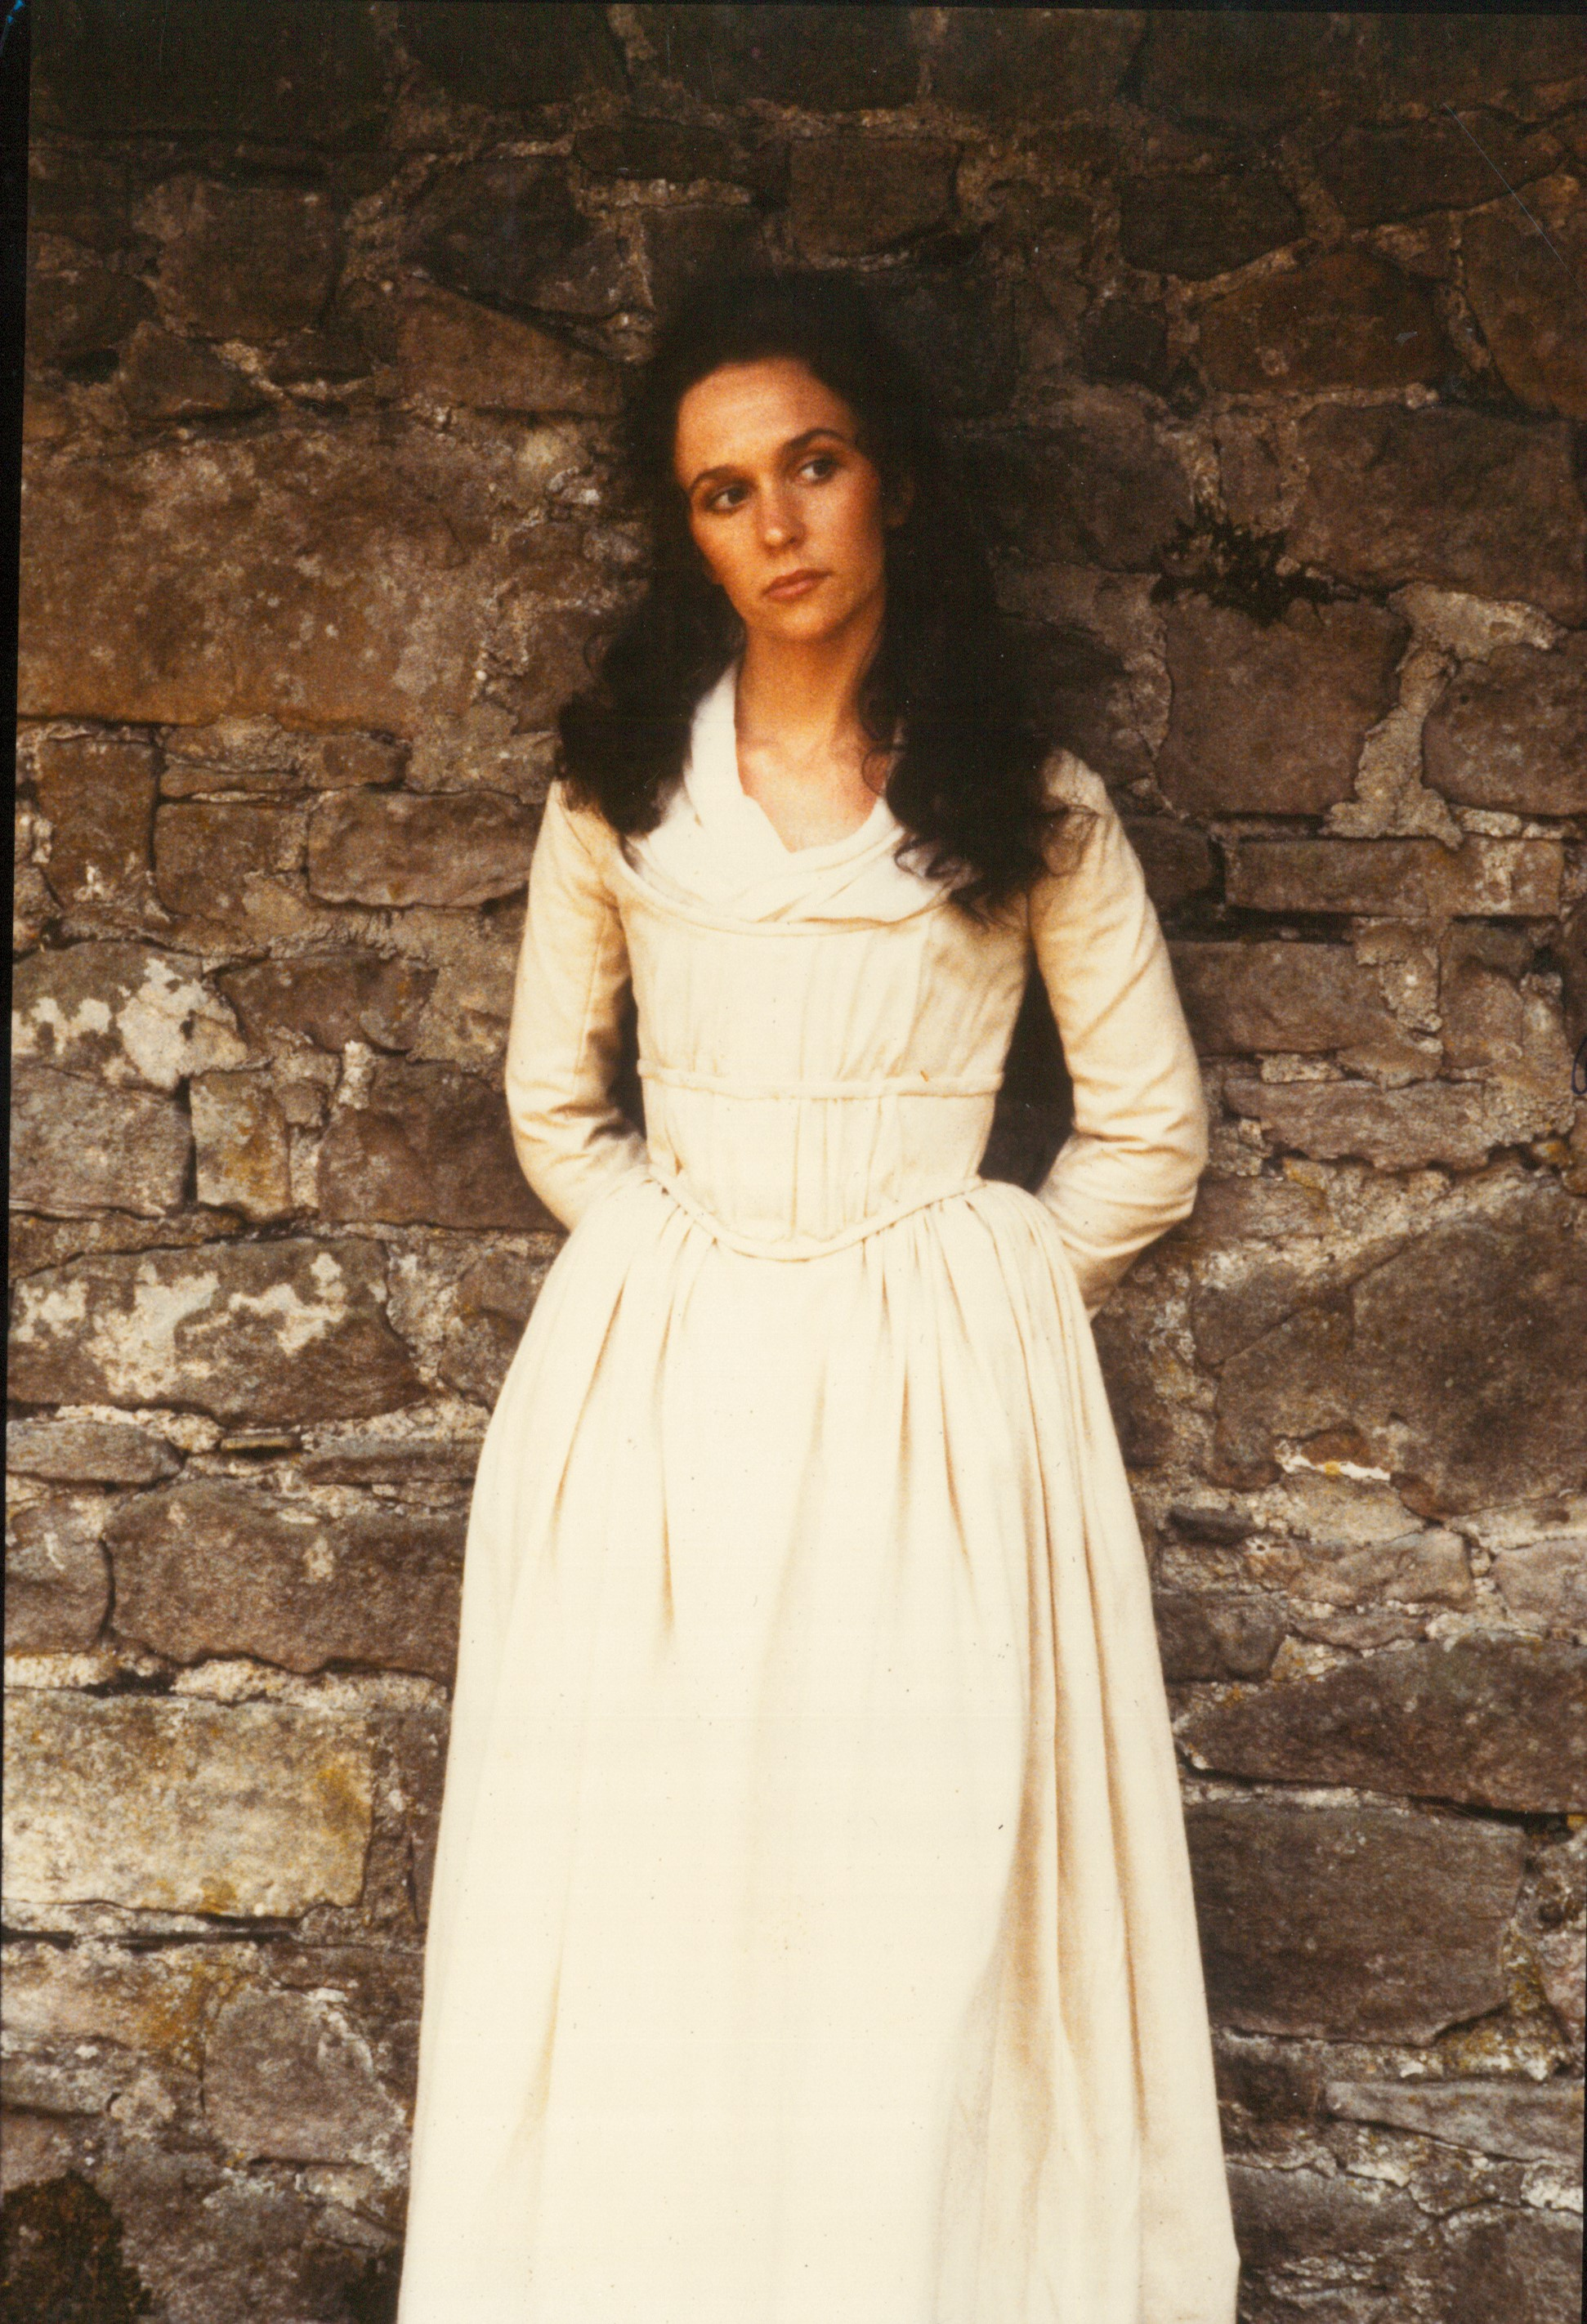 wuthering heights bront emily small helen jack ian